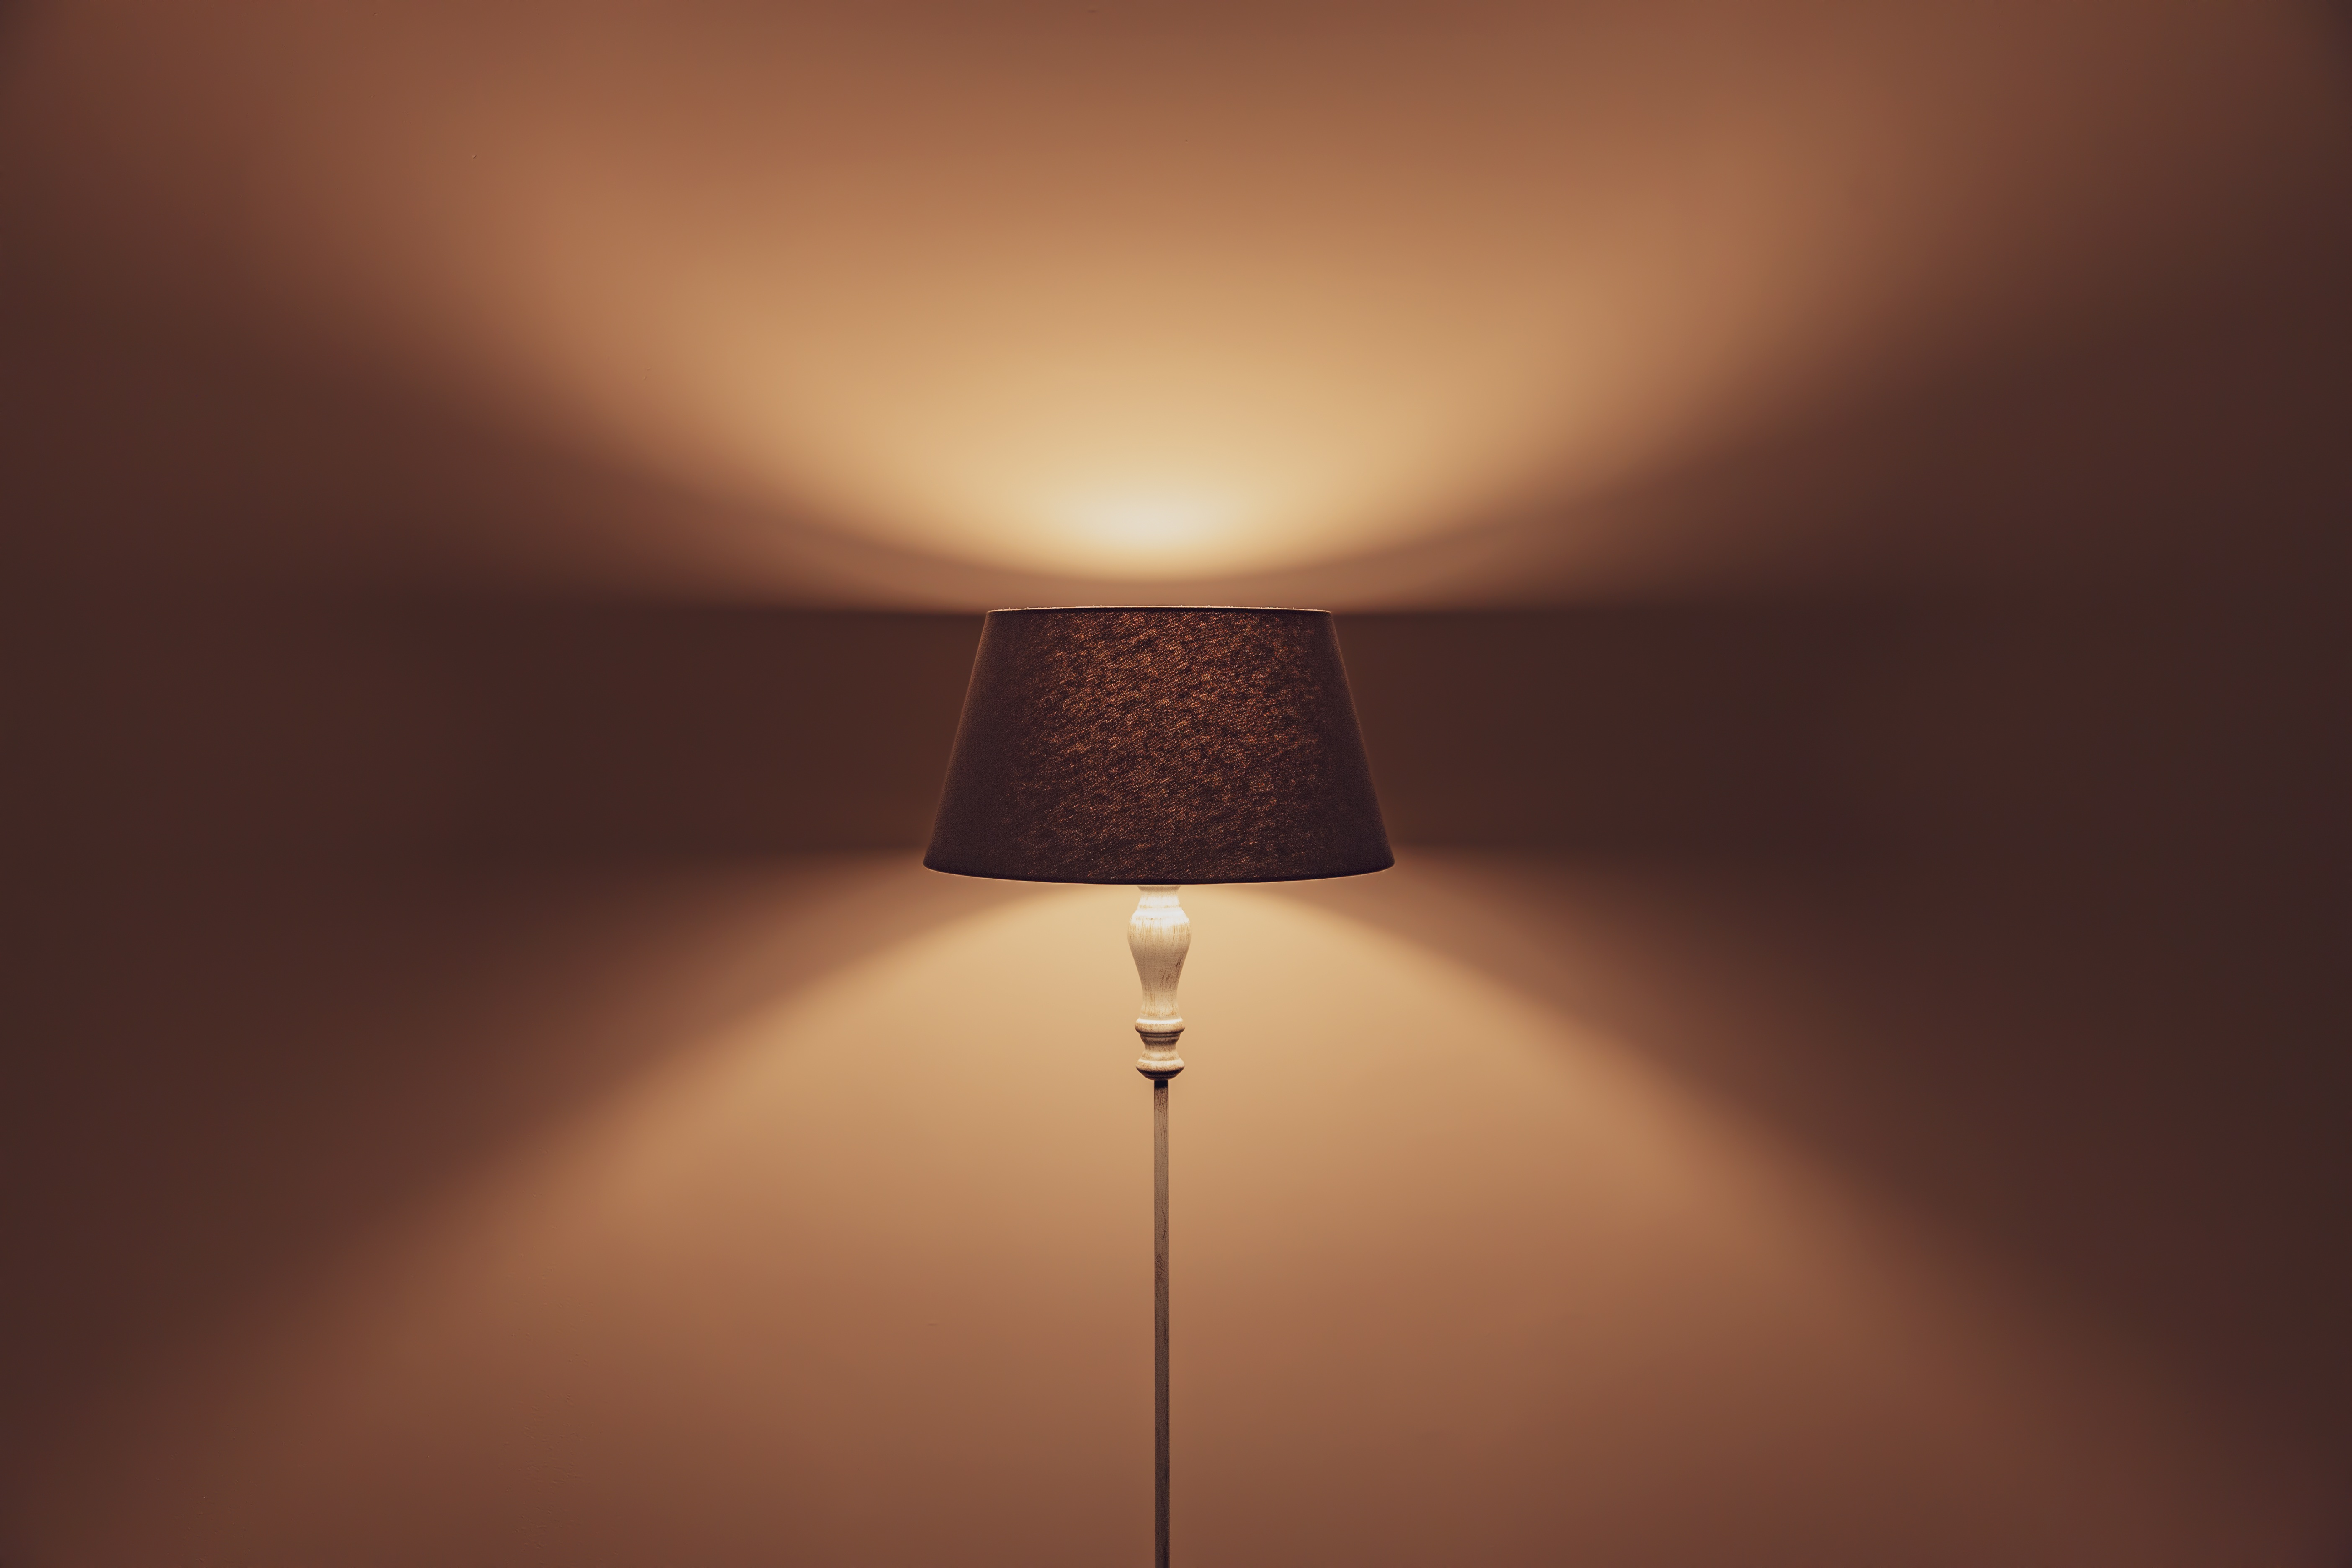 142789 download wallpaper Interior, Minimalism, Shadow, Lamp, Illumination, Lighting, Floor Lamp, Shade, Lampshade screensavers and pictures for free